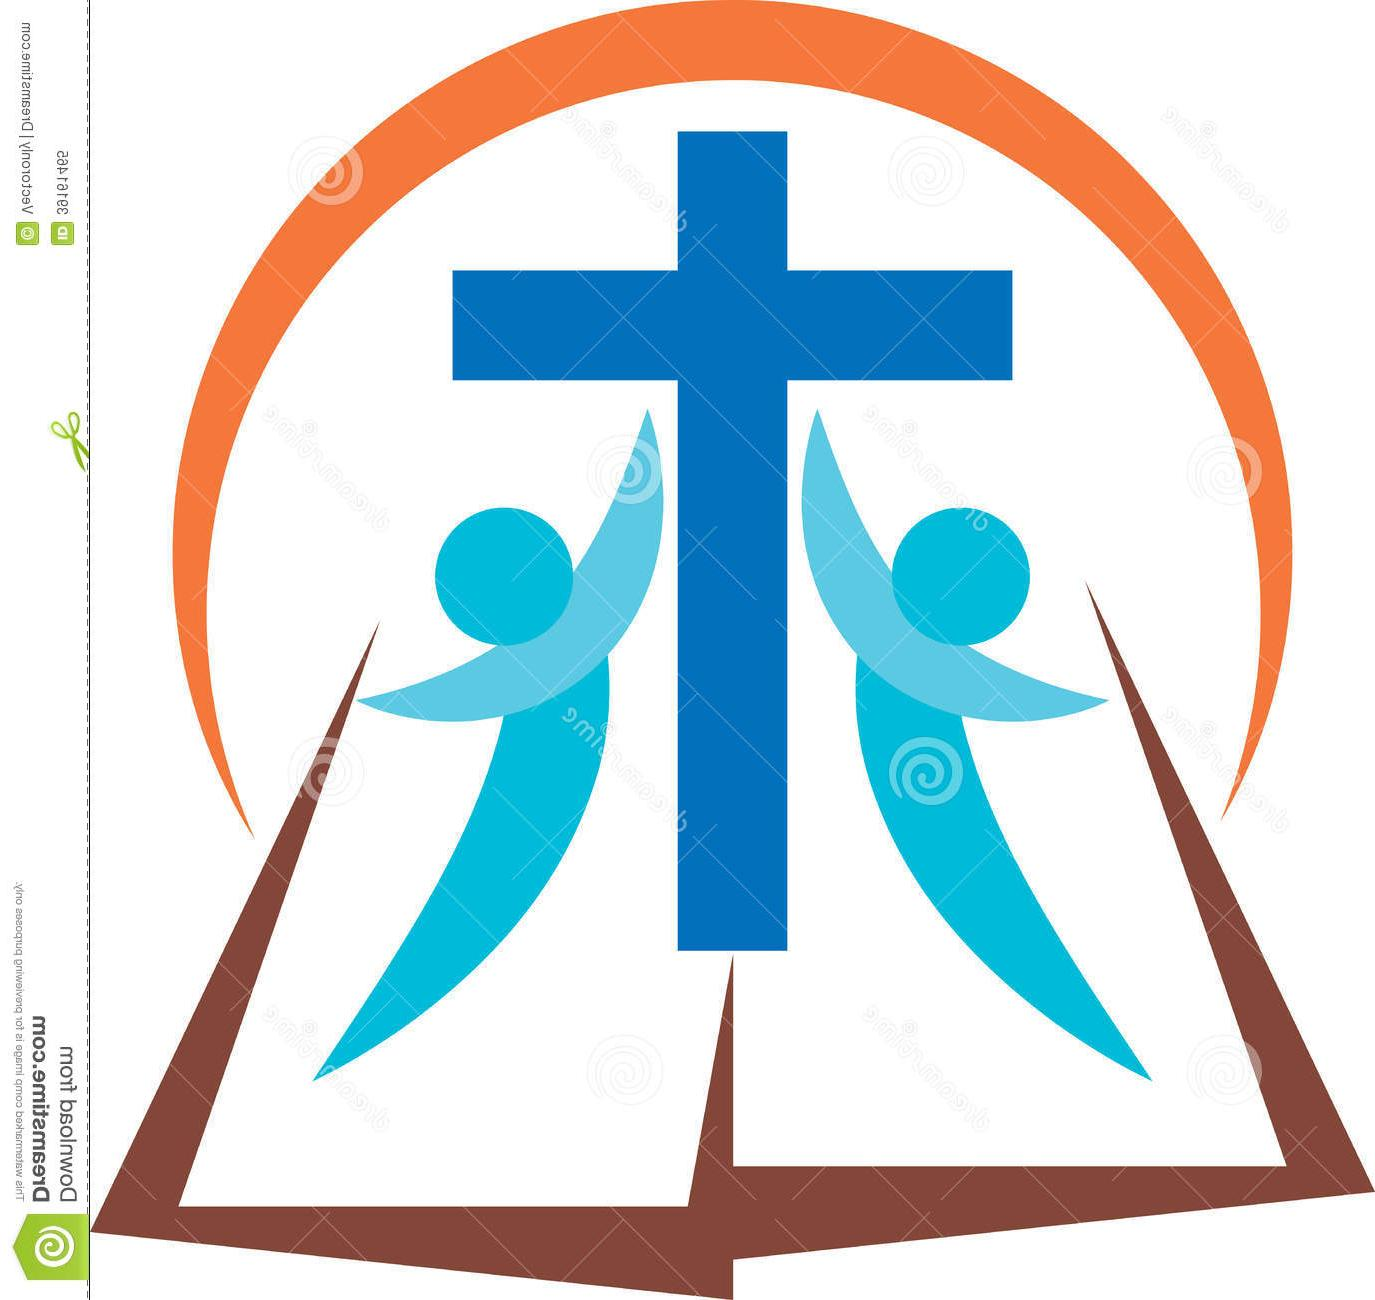 1375x1300 Vector Christian Cross And Bible Vector Free Vector Art, Images